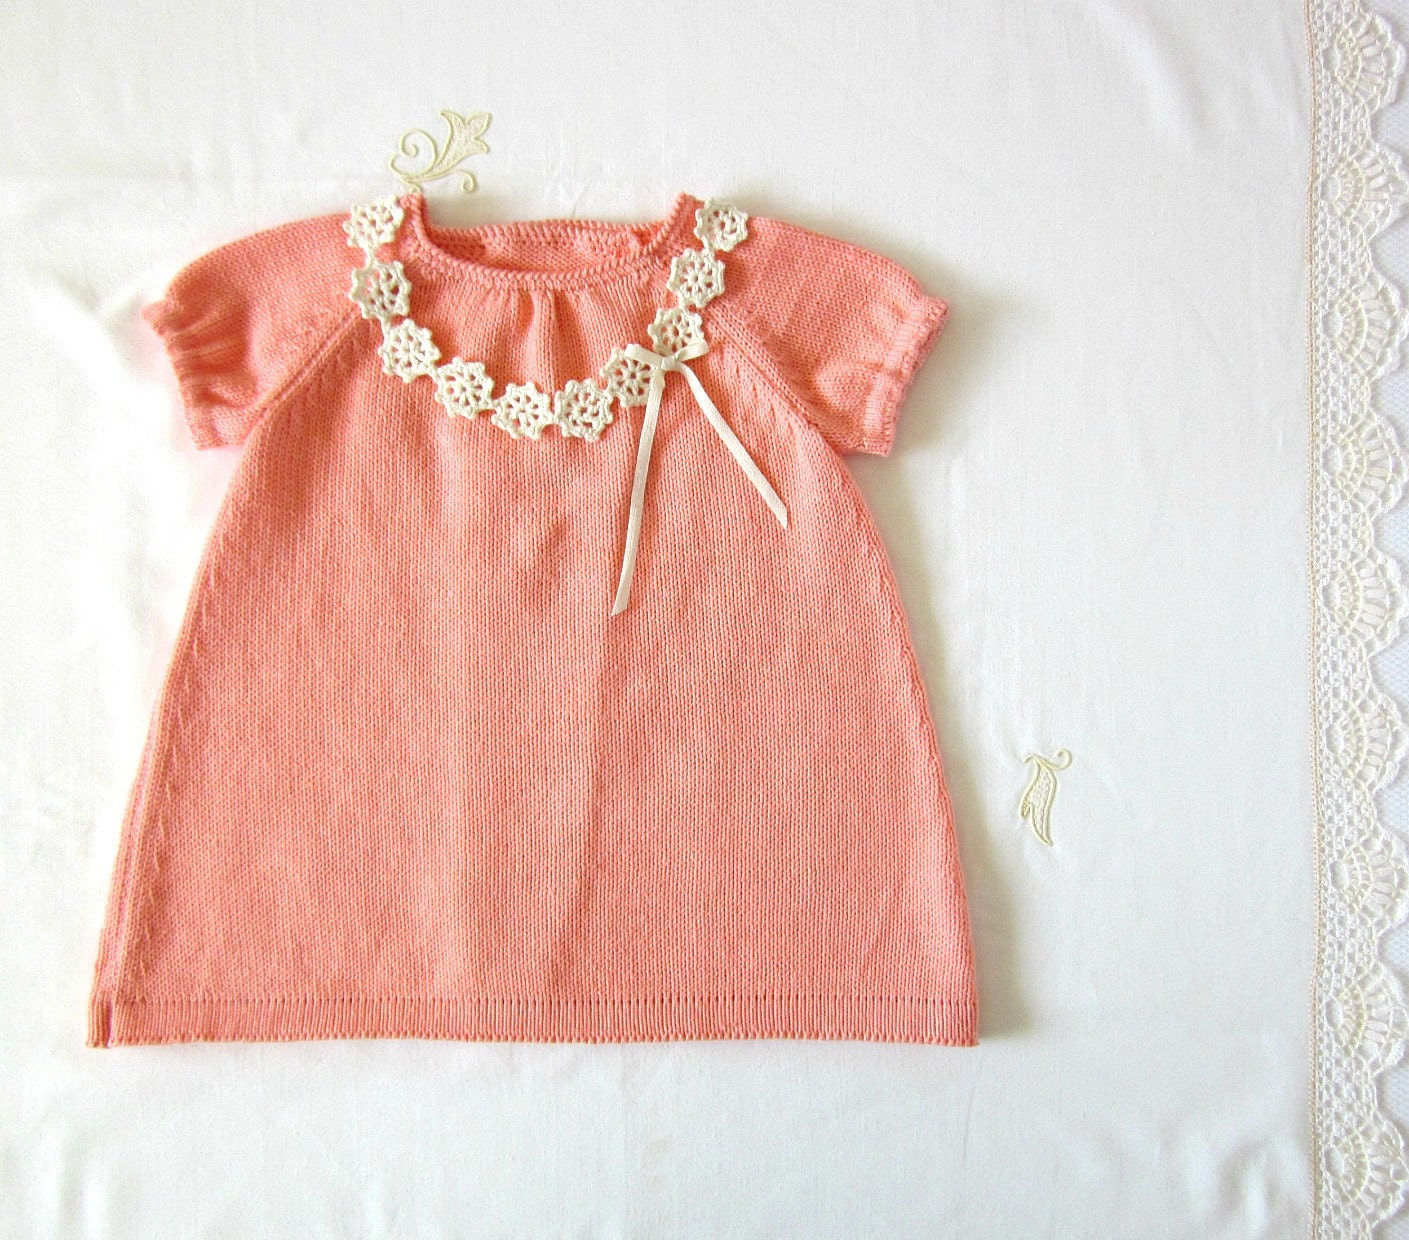 Knitted baby dress coral Crochet necklace cotton READY